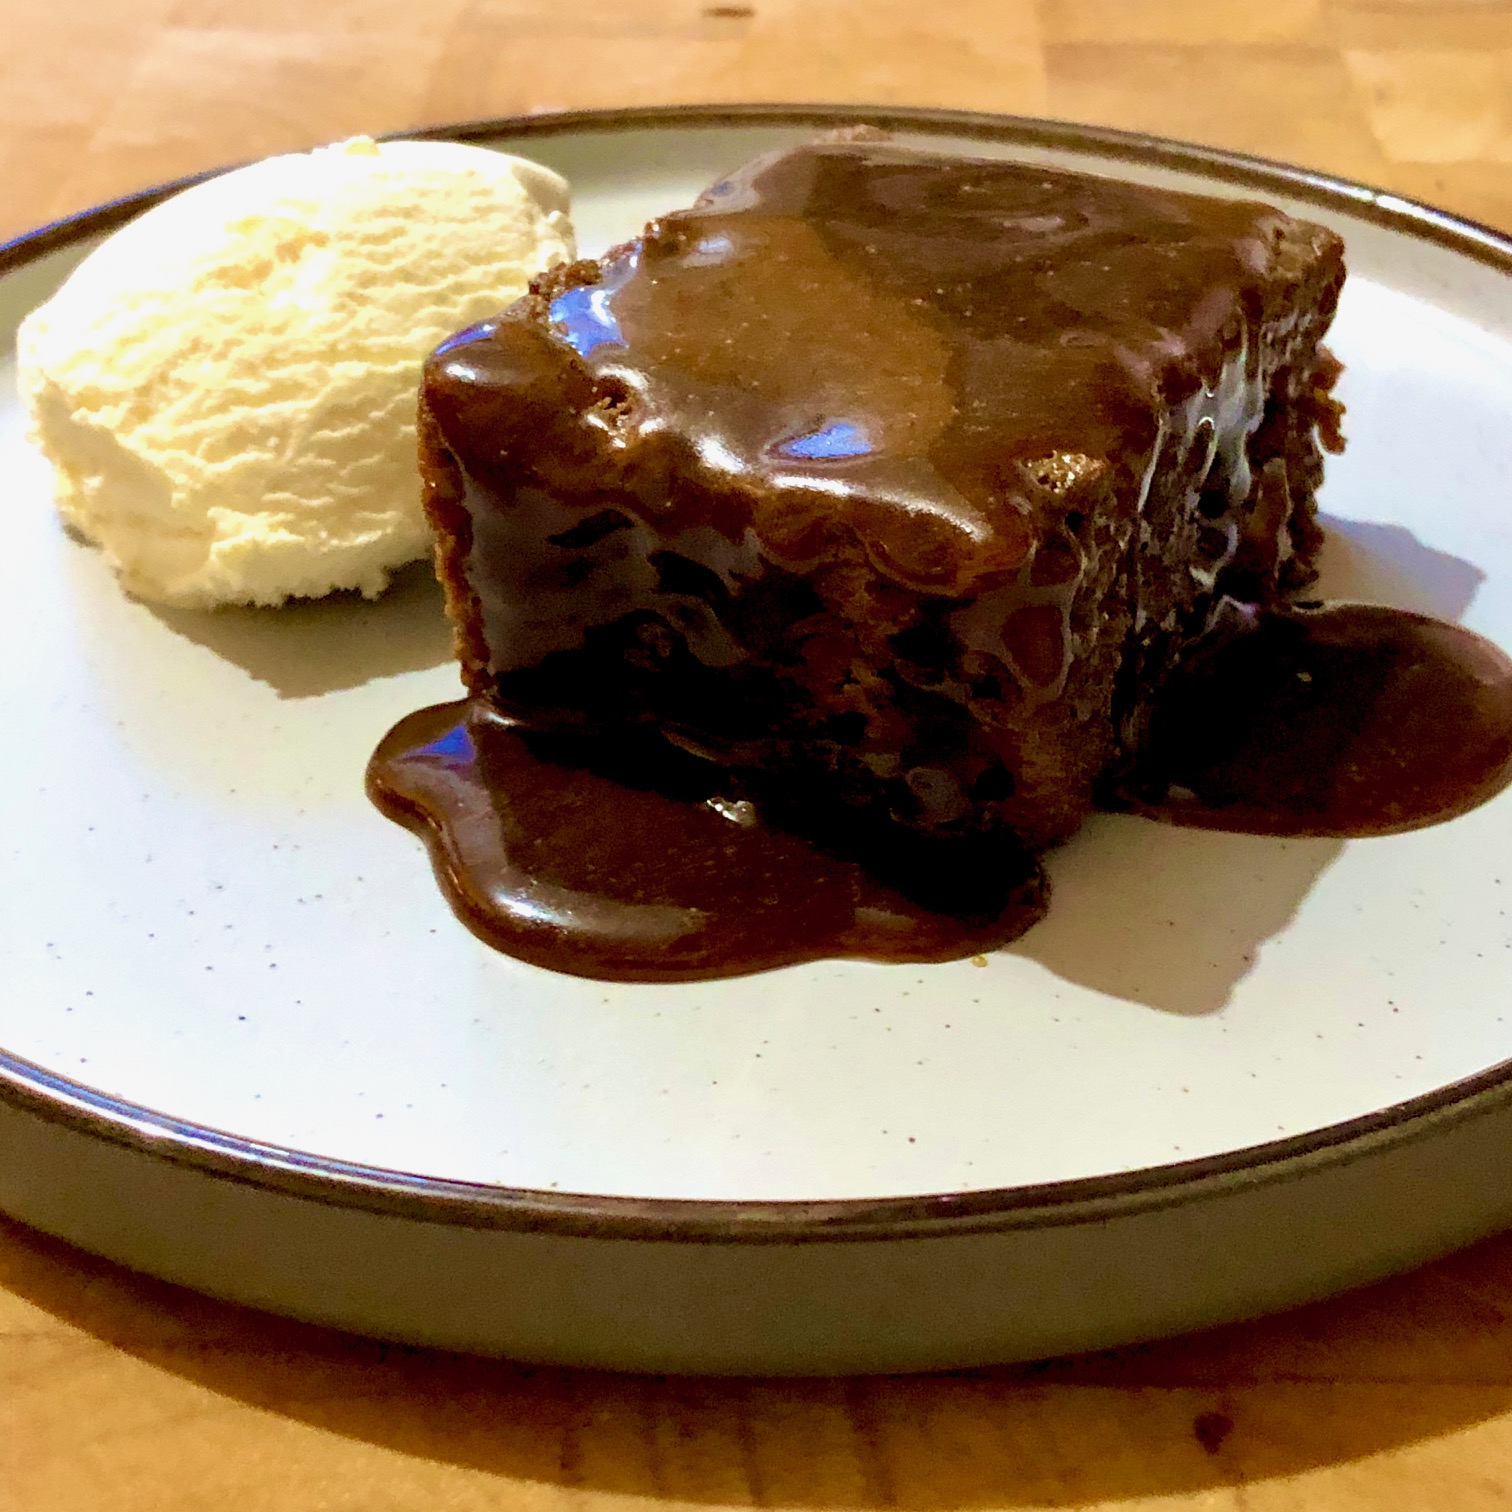 Day 71: Banana Sticky Toffee Pudding with Butterscotch Sauce